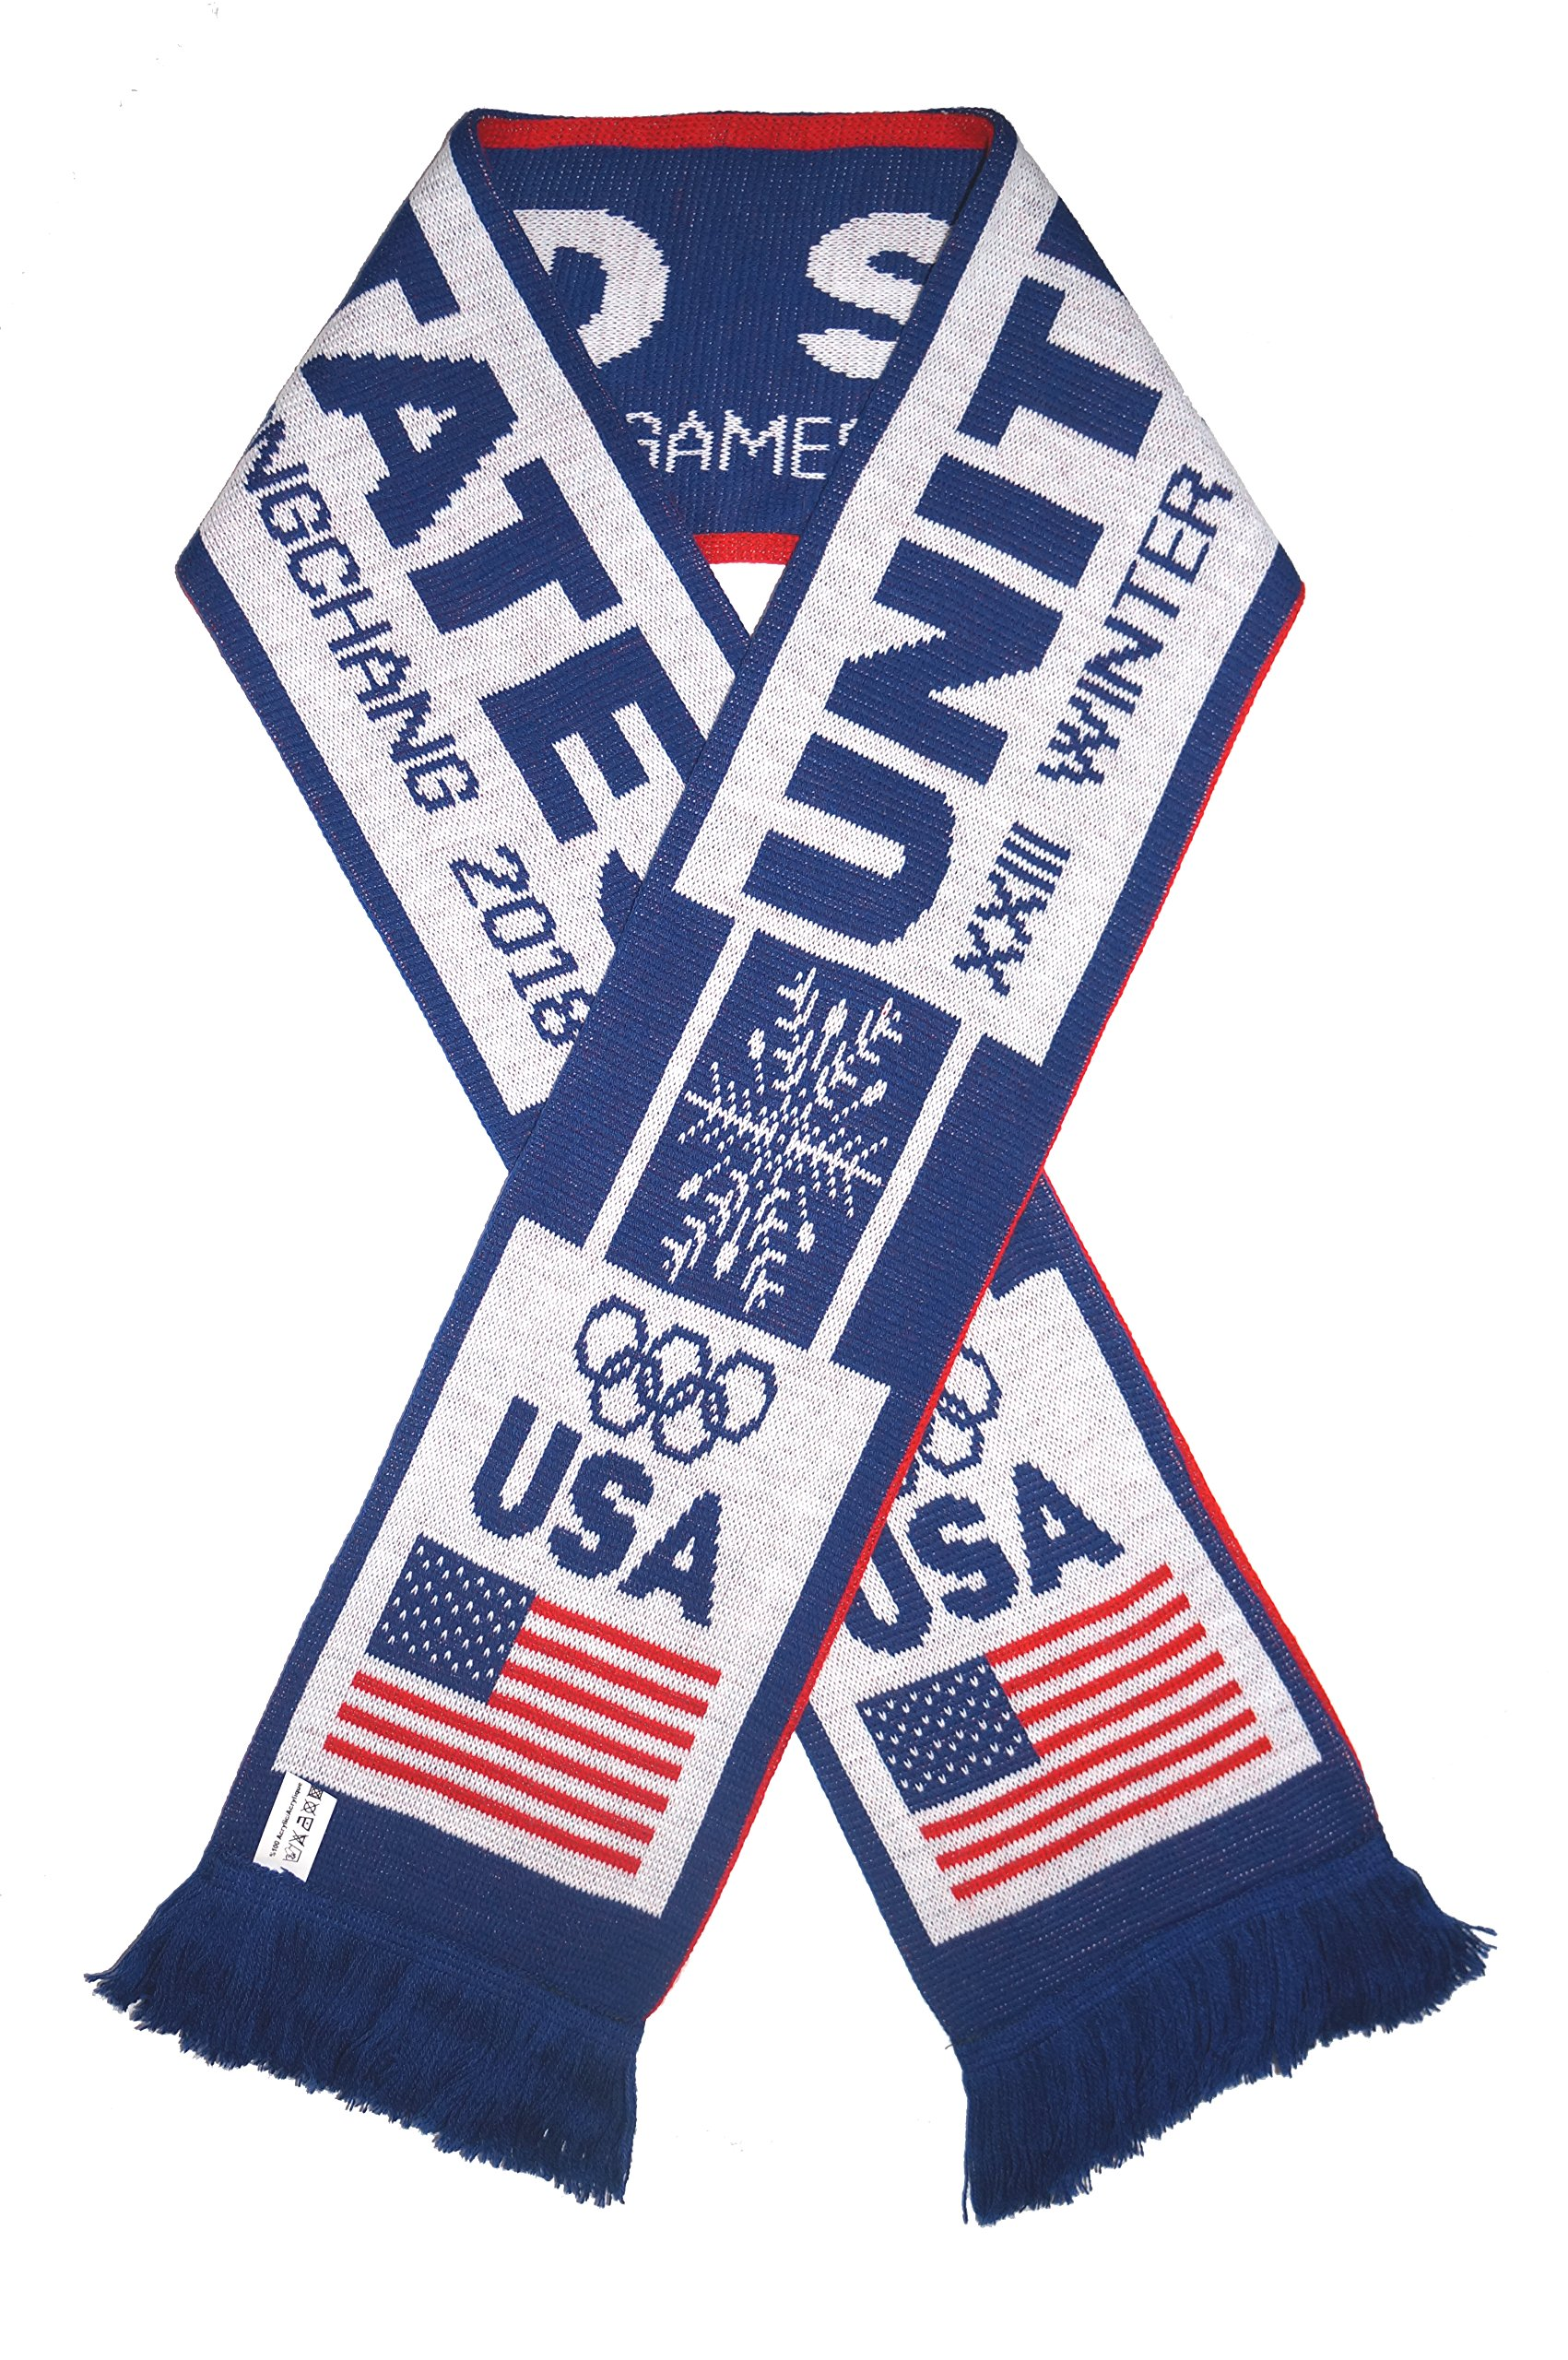 USA 2018 Olympic Winter Games Champions Favorite Scarf